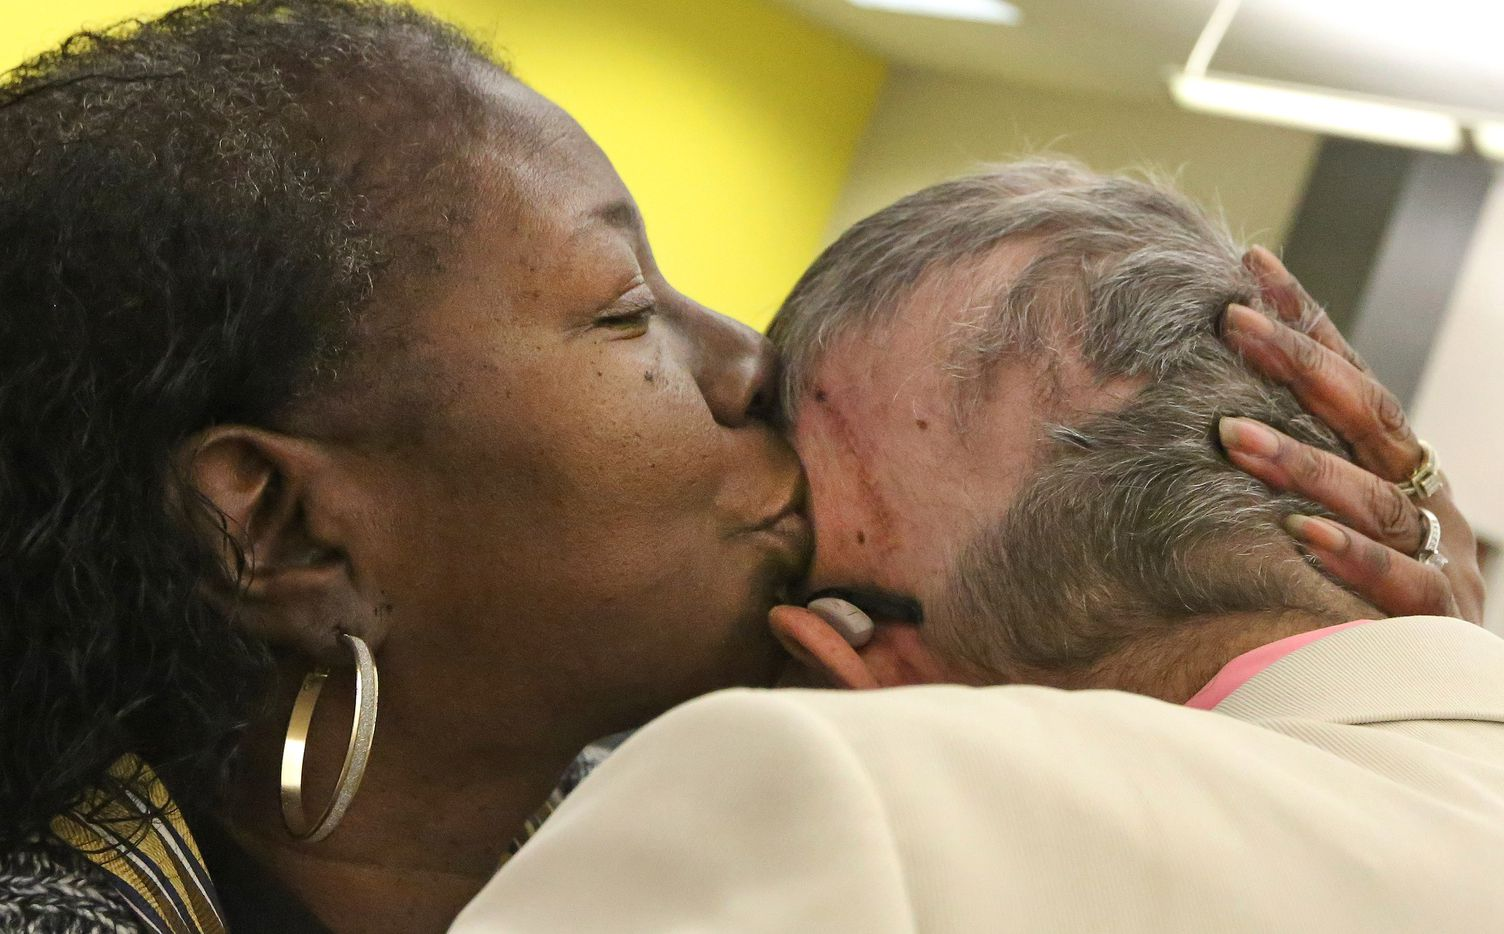 Co-worker Carol Caraway kisses the head of Jeffrey Weiss on the spot where his tumor was removed, during his career tribute party at The Dallas Morning News on Wednesday, March 1, 2017. (Louis DeLuca/The Dallas Morning News)